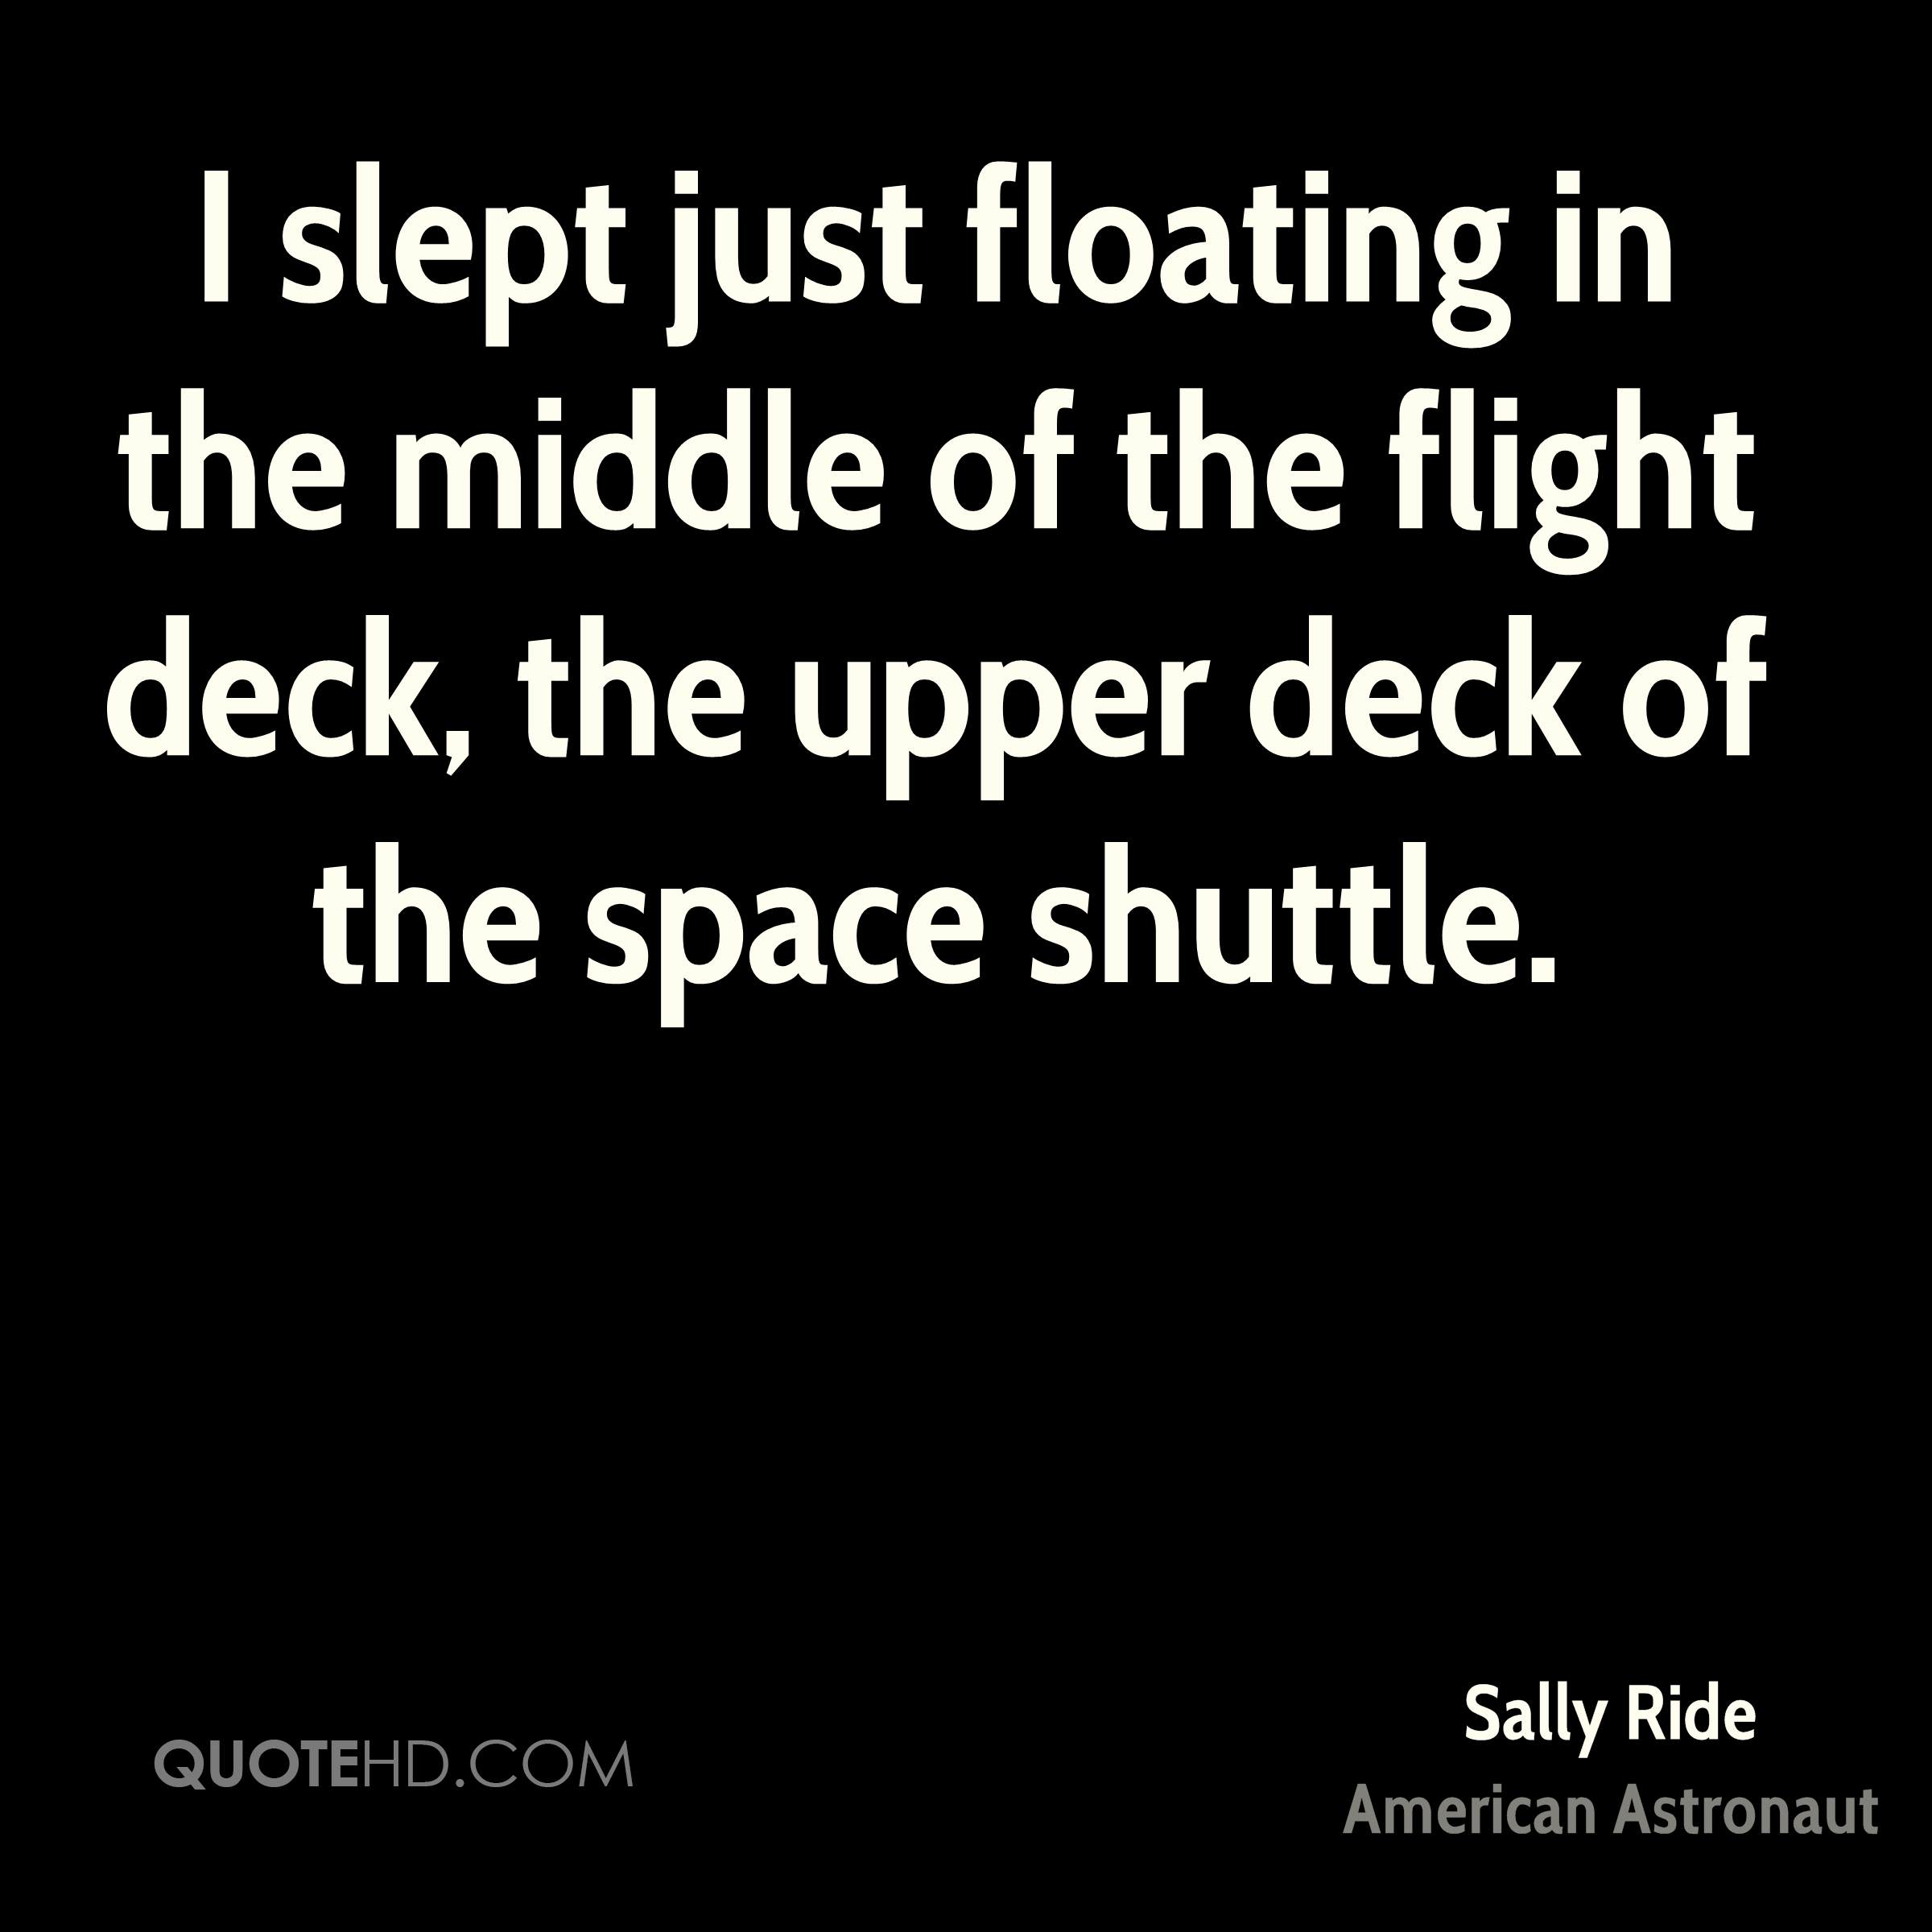 I slept just floating in the middle of the flight deck, the upper deck of the space shuttle.